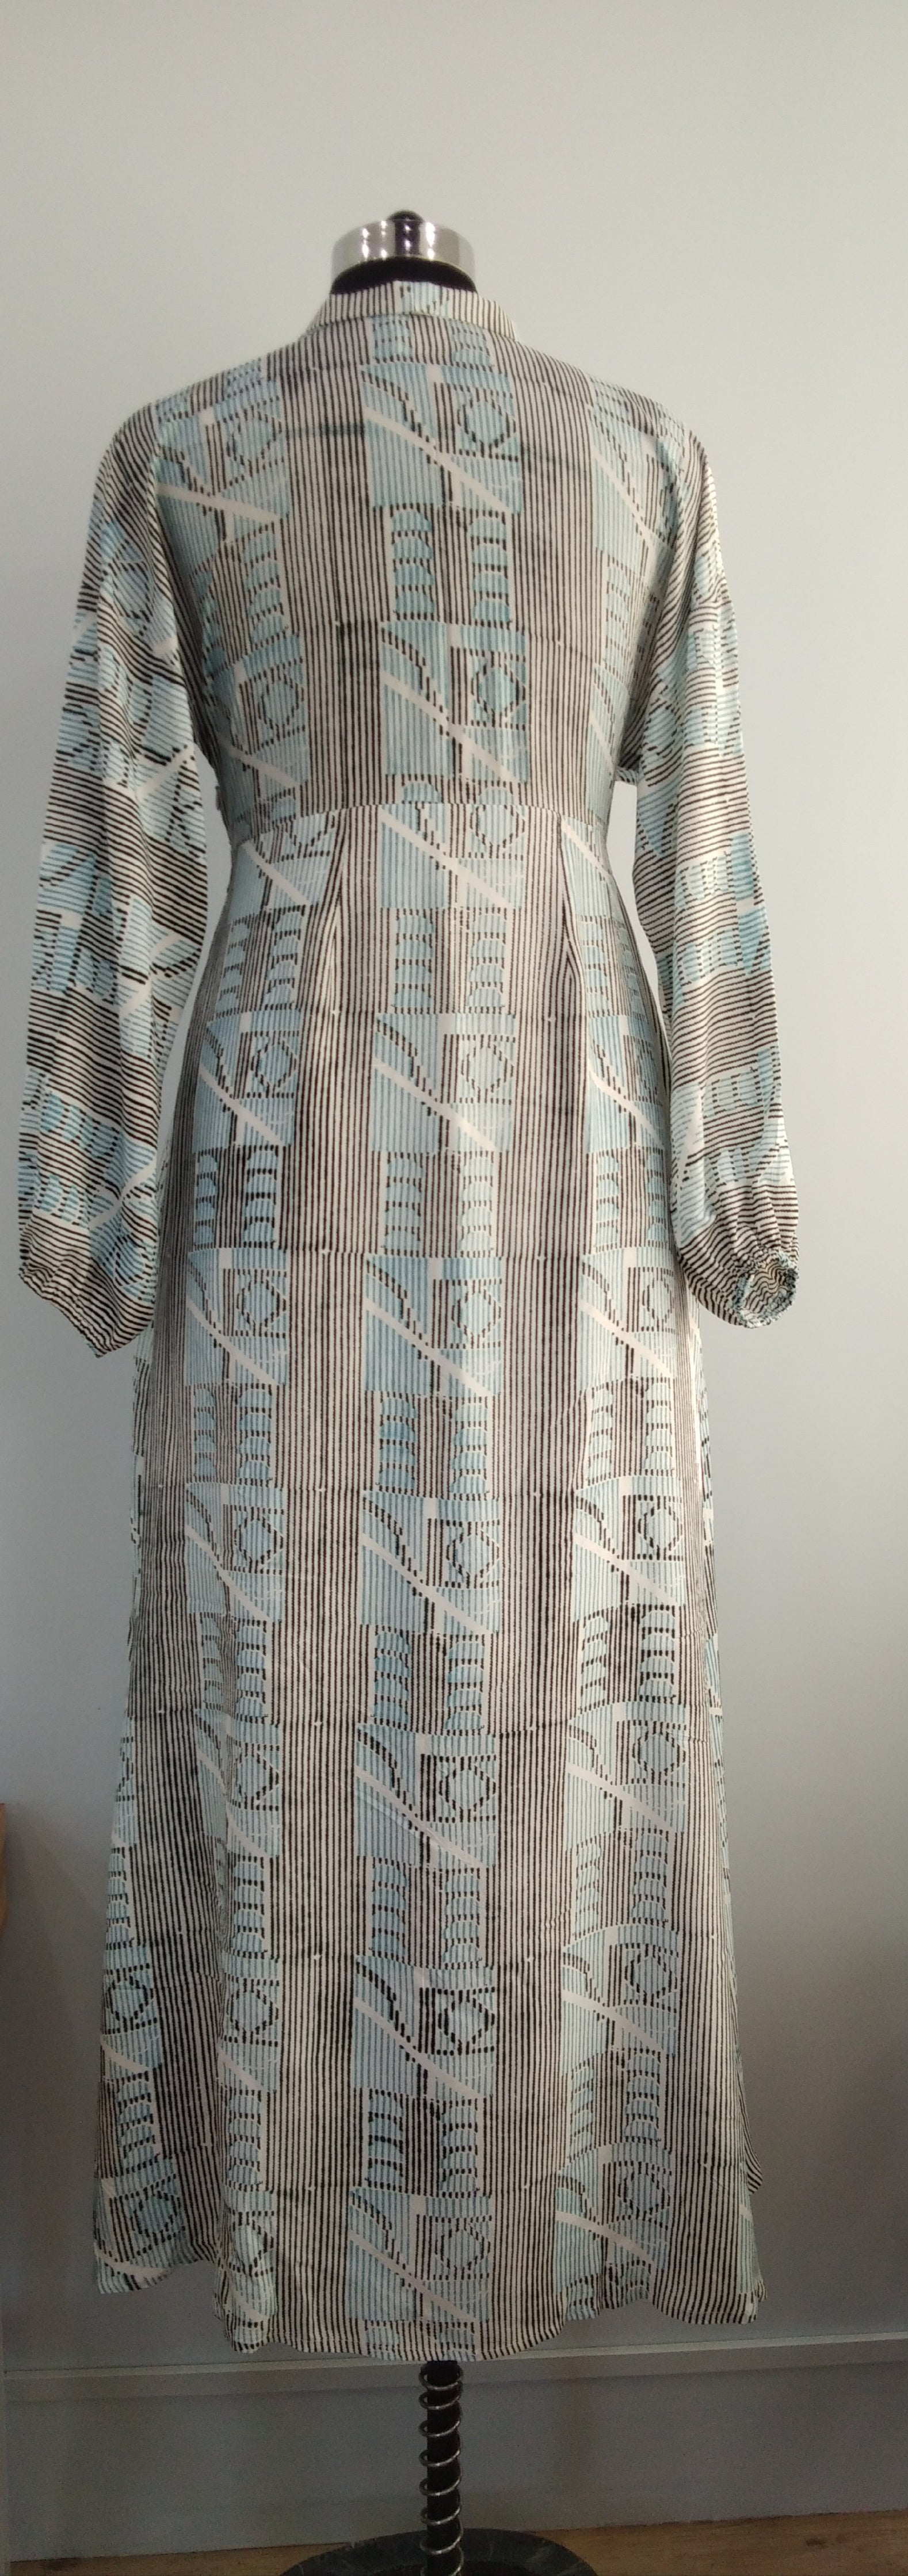 Blockprinted Long Dress